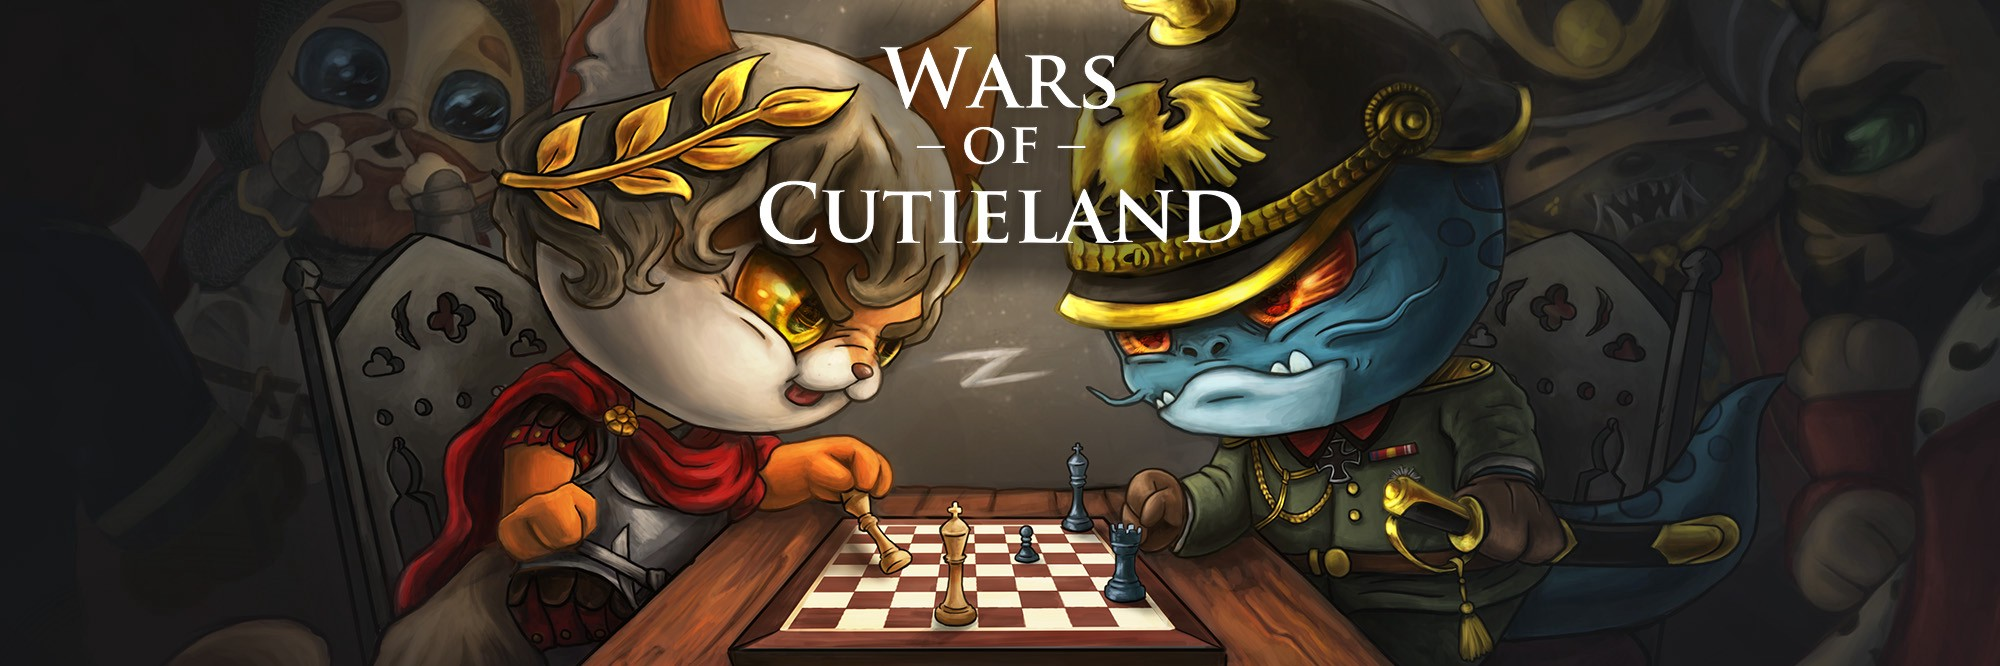 Check Out the Stars of Stage IV Wars of Cutieland